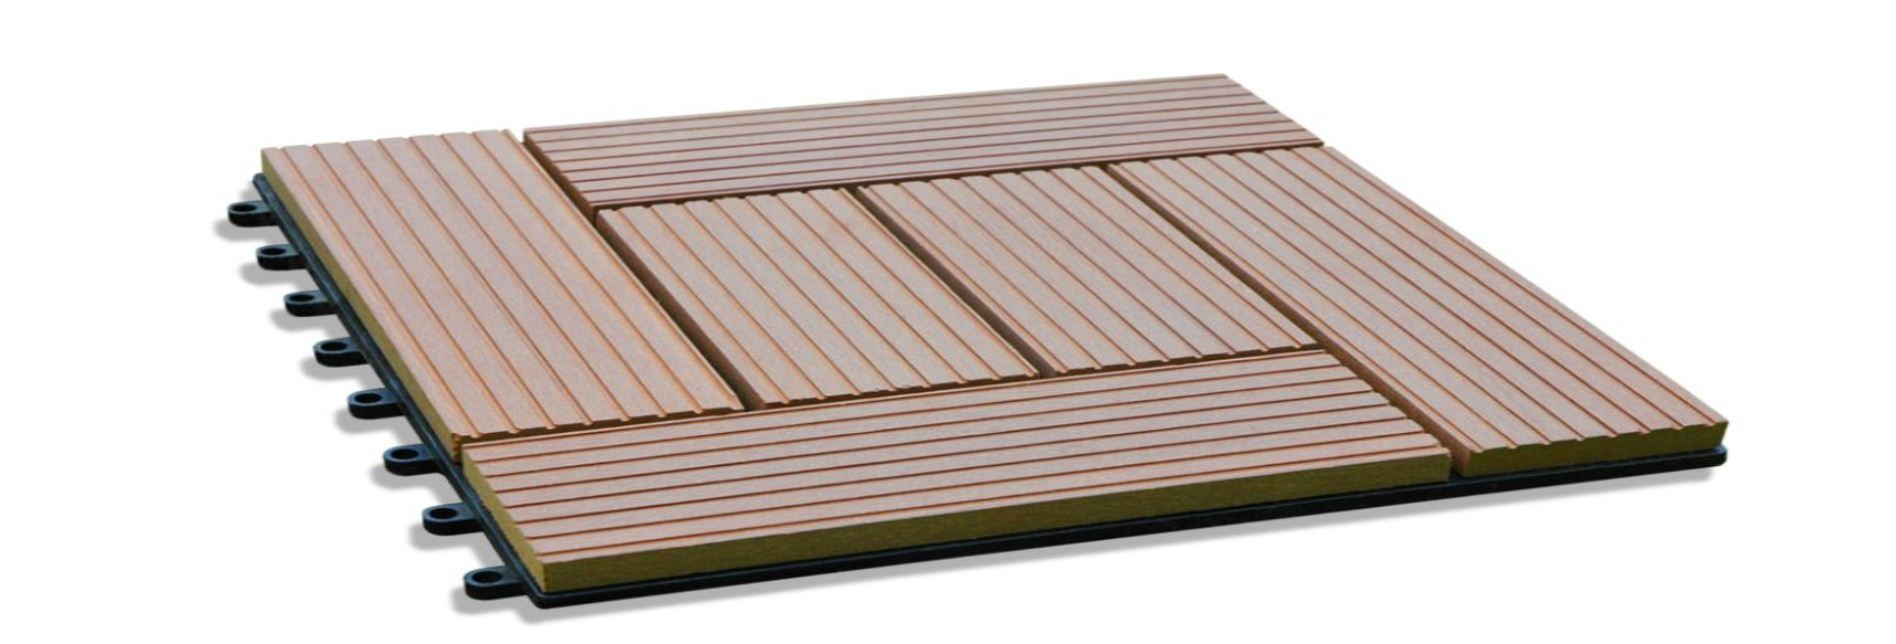 Highest Quality Wood Plastic Composite (WPC) Products U2013 Cladding, Terrace,  Fence Boards. Products For Those, Who Appreciate The Durability, .